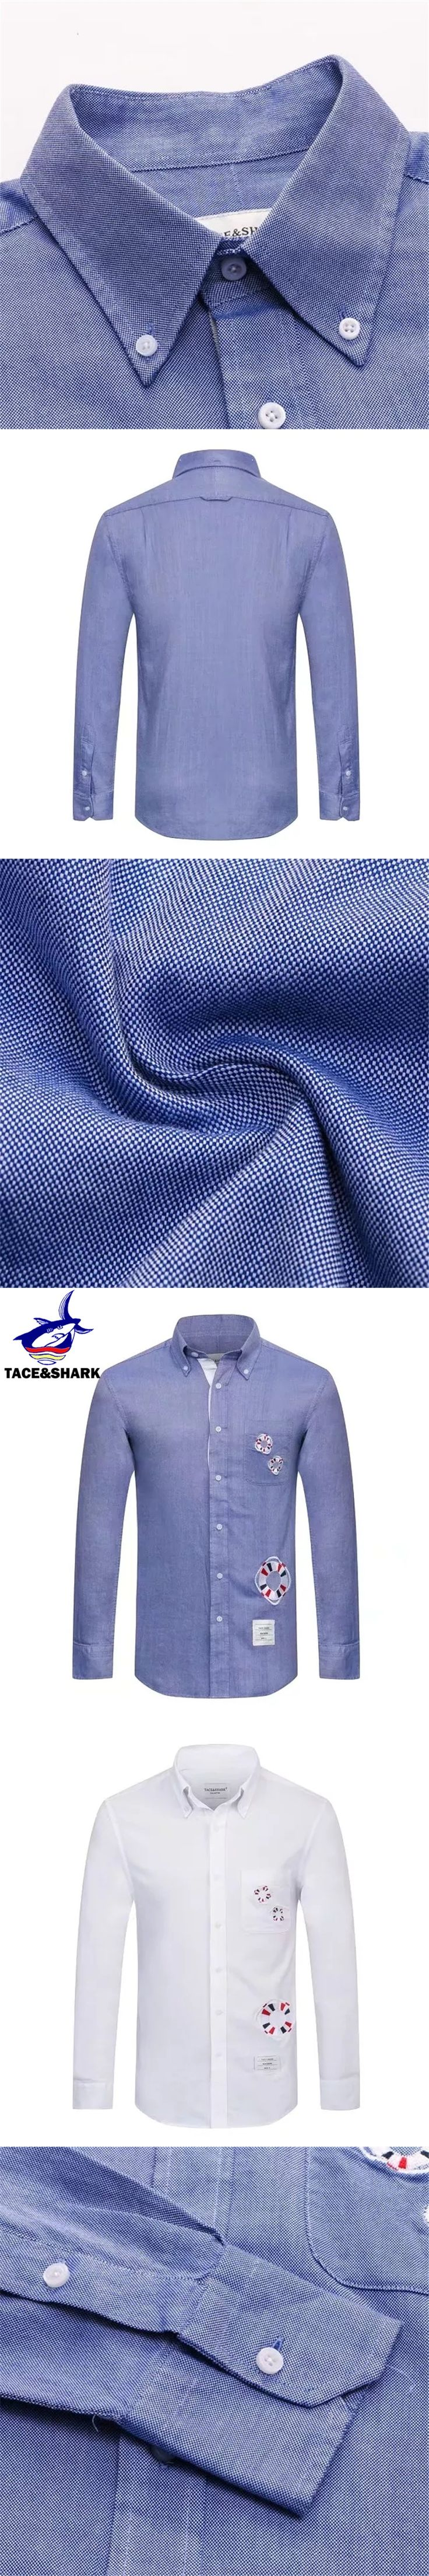 High quality Brand Tace & Shark Men Long Sleeve Shirt Slim Fit Cotton Smart Casual Spring Autumn Formal Male Shirts